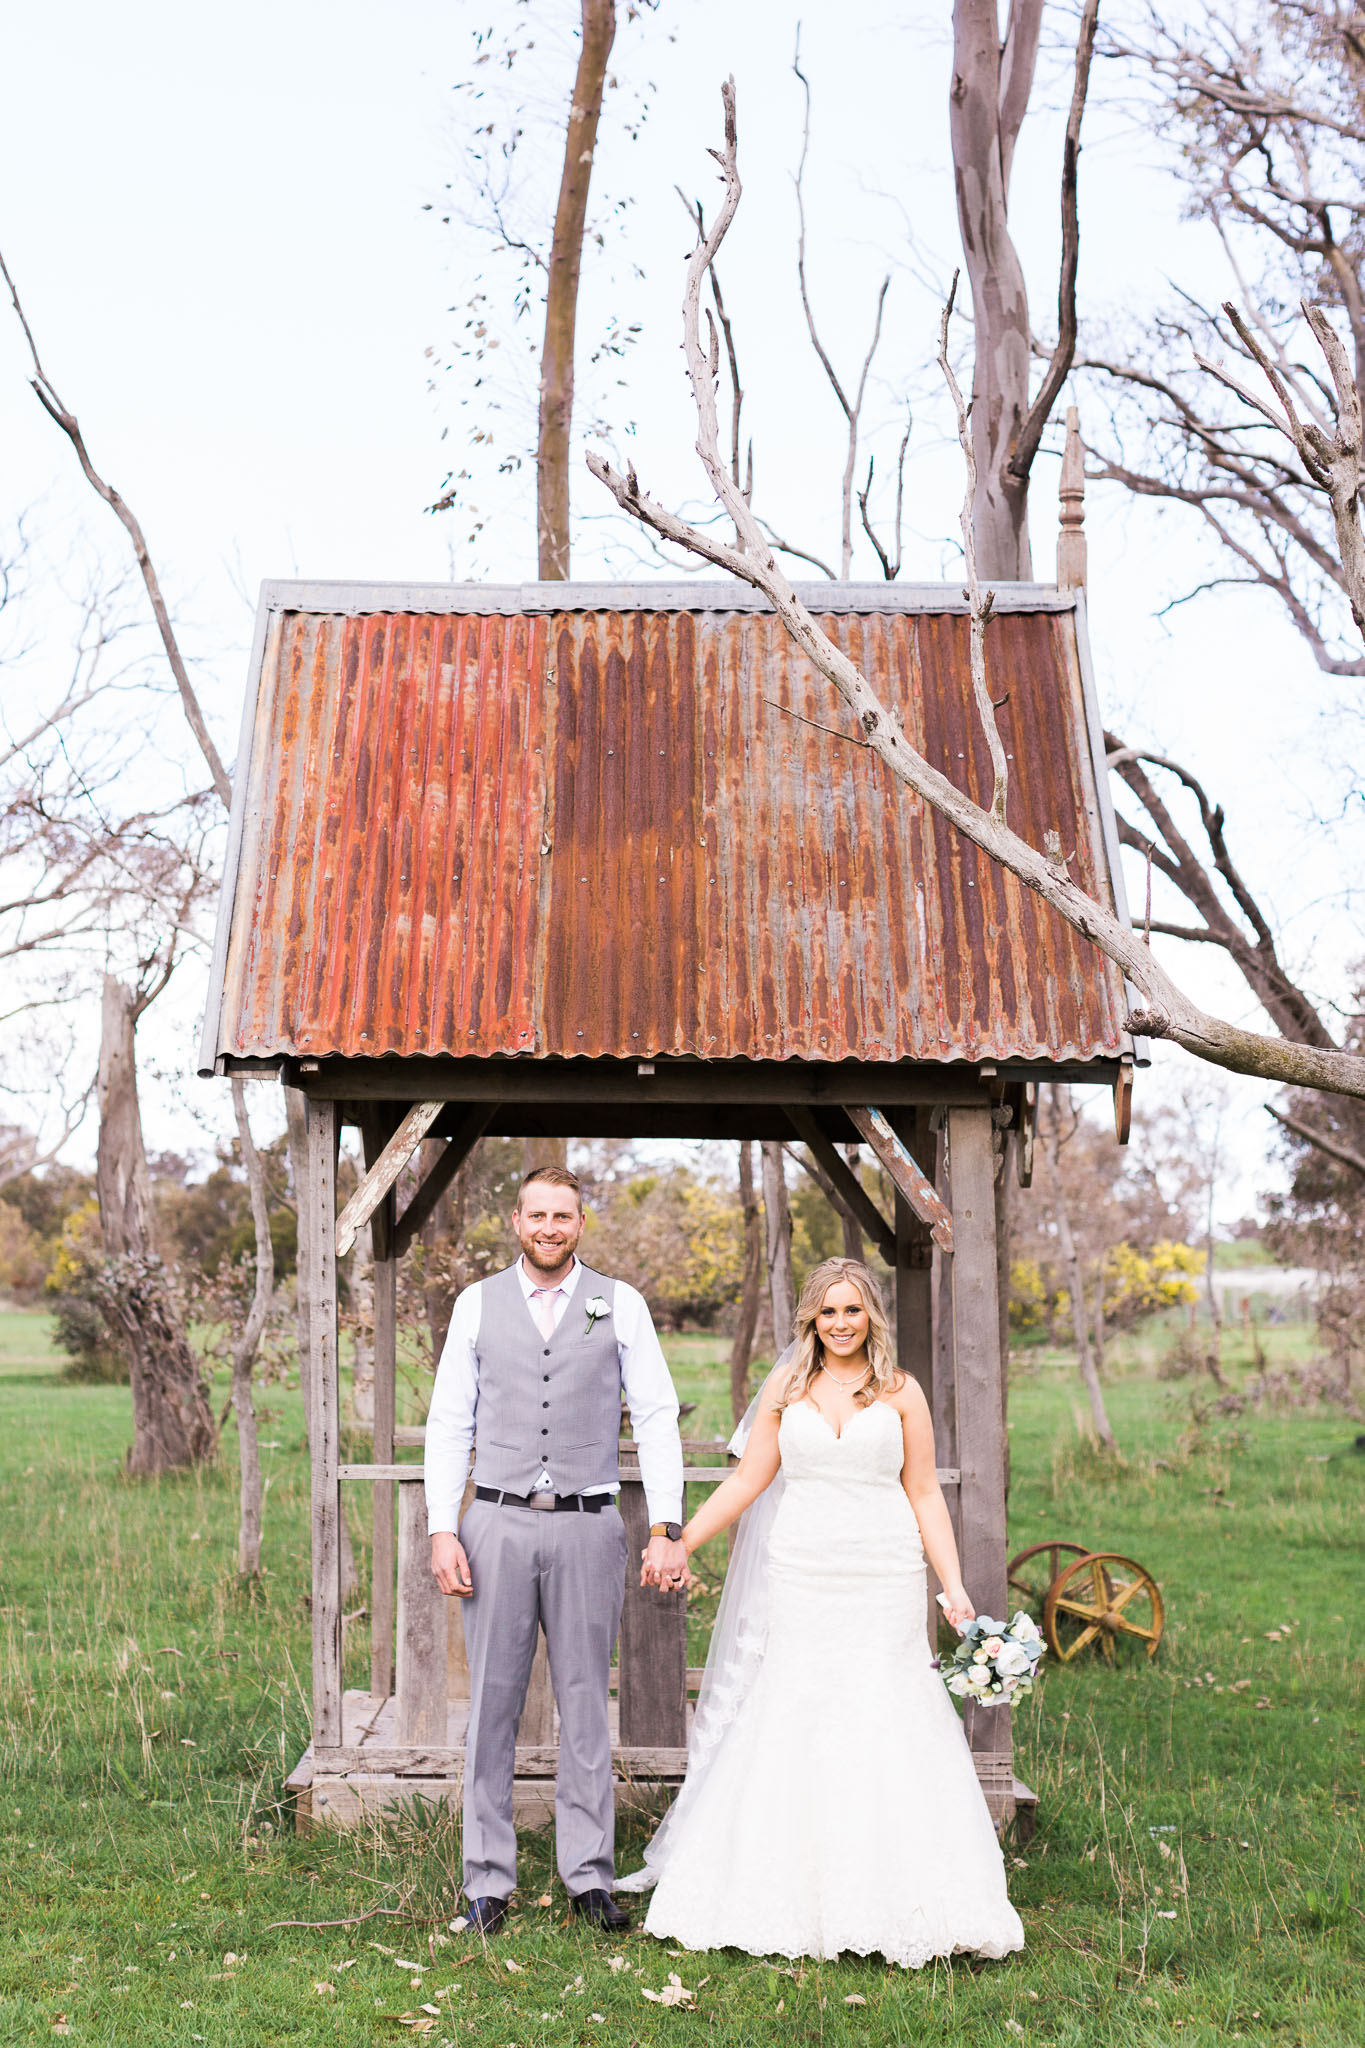 Bride and Groom Standing in front of old farm equipment - Gold Creek Station Wedding Photography